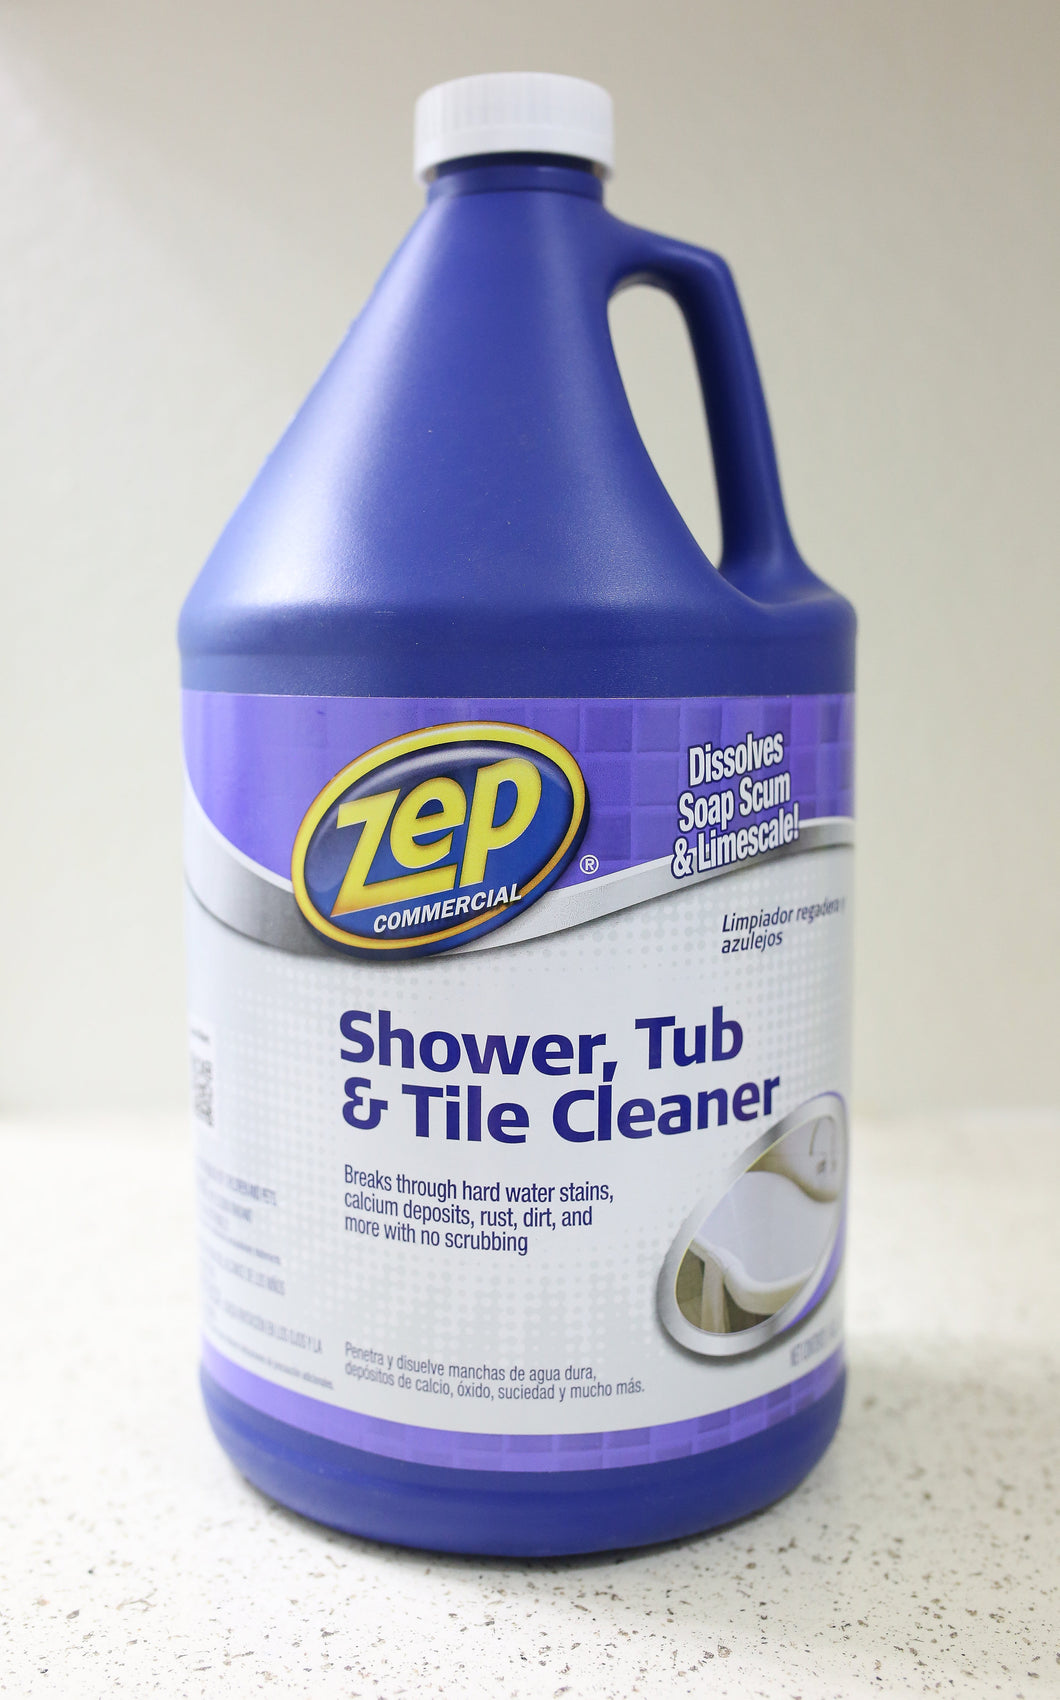 Zep Shower, Tub, & Tile Cleaner 1 Gallon – Vacation Angels